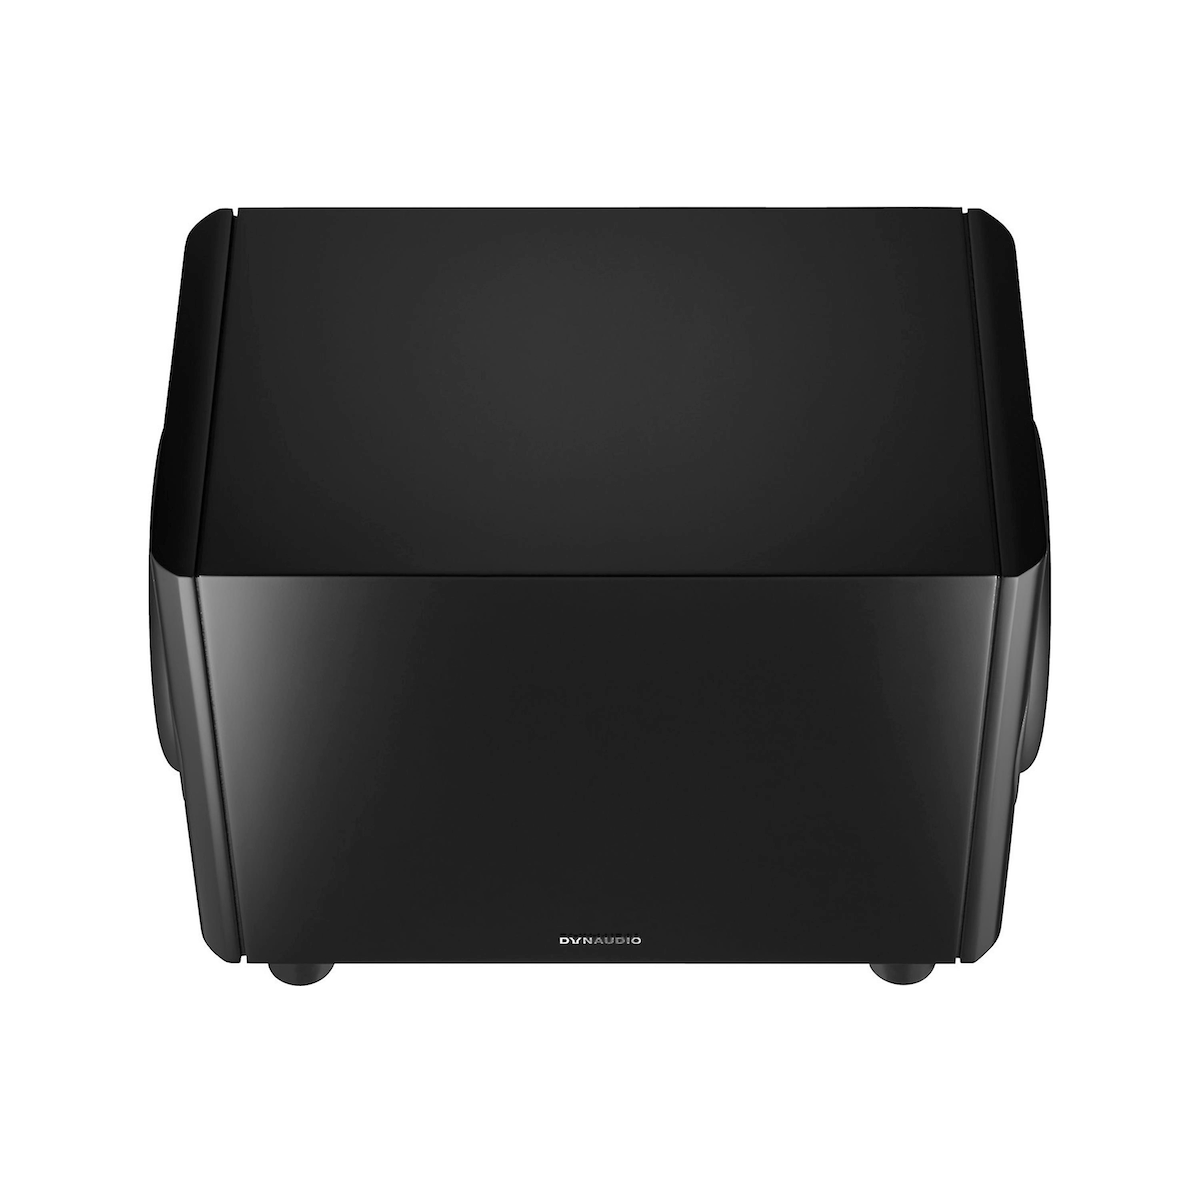 Dynaudio Sub 6 - Active Subwoofer, Dynaudio, Active Subwoofer - AVStore.in